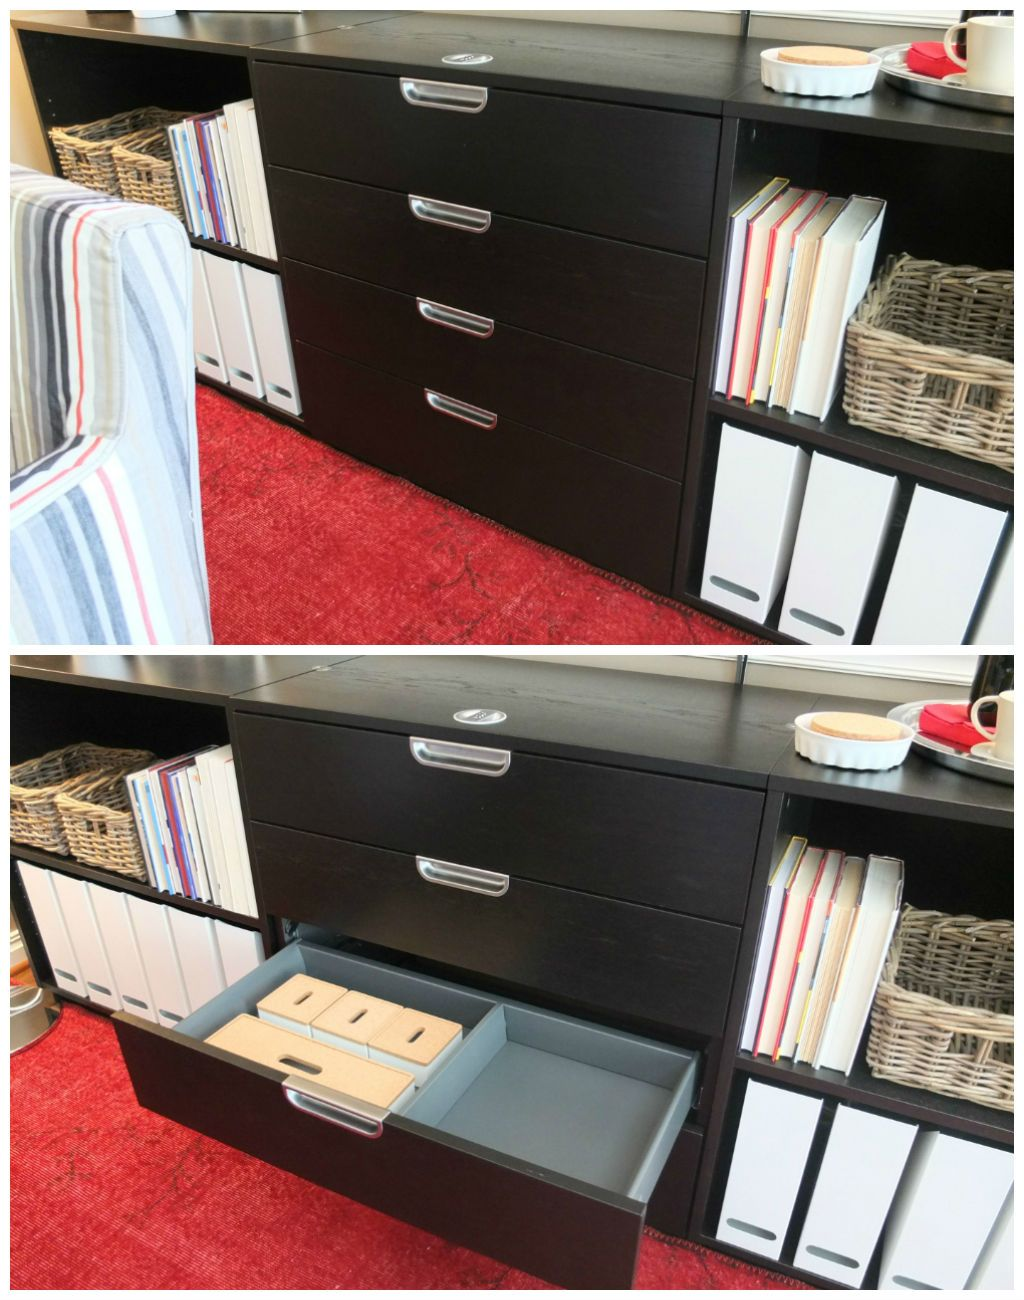 Everything From Office Supplies To Oversized Doents In This Galant Drawer Unit Lockable Storage